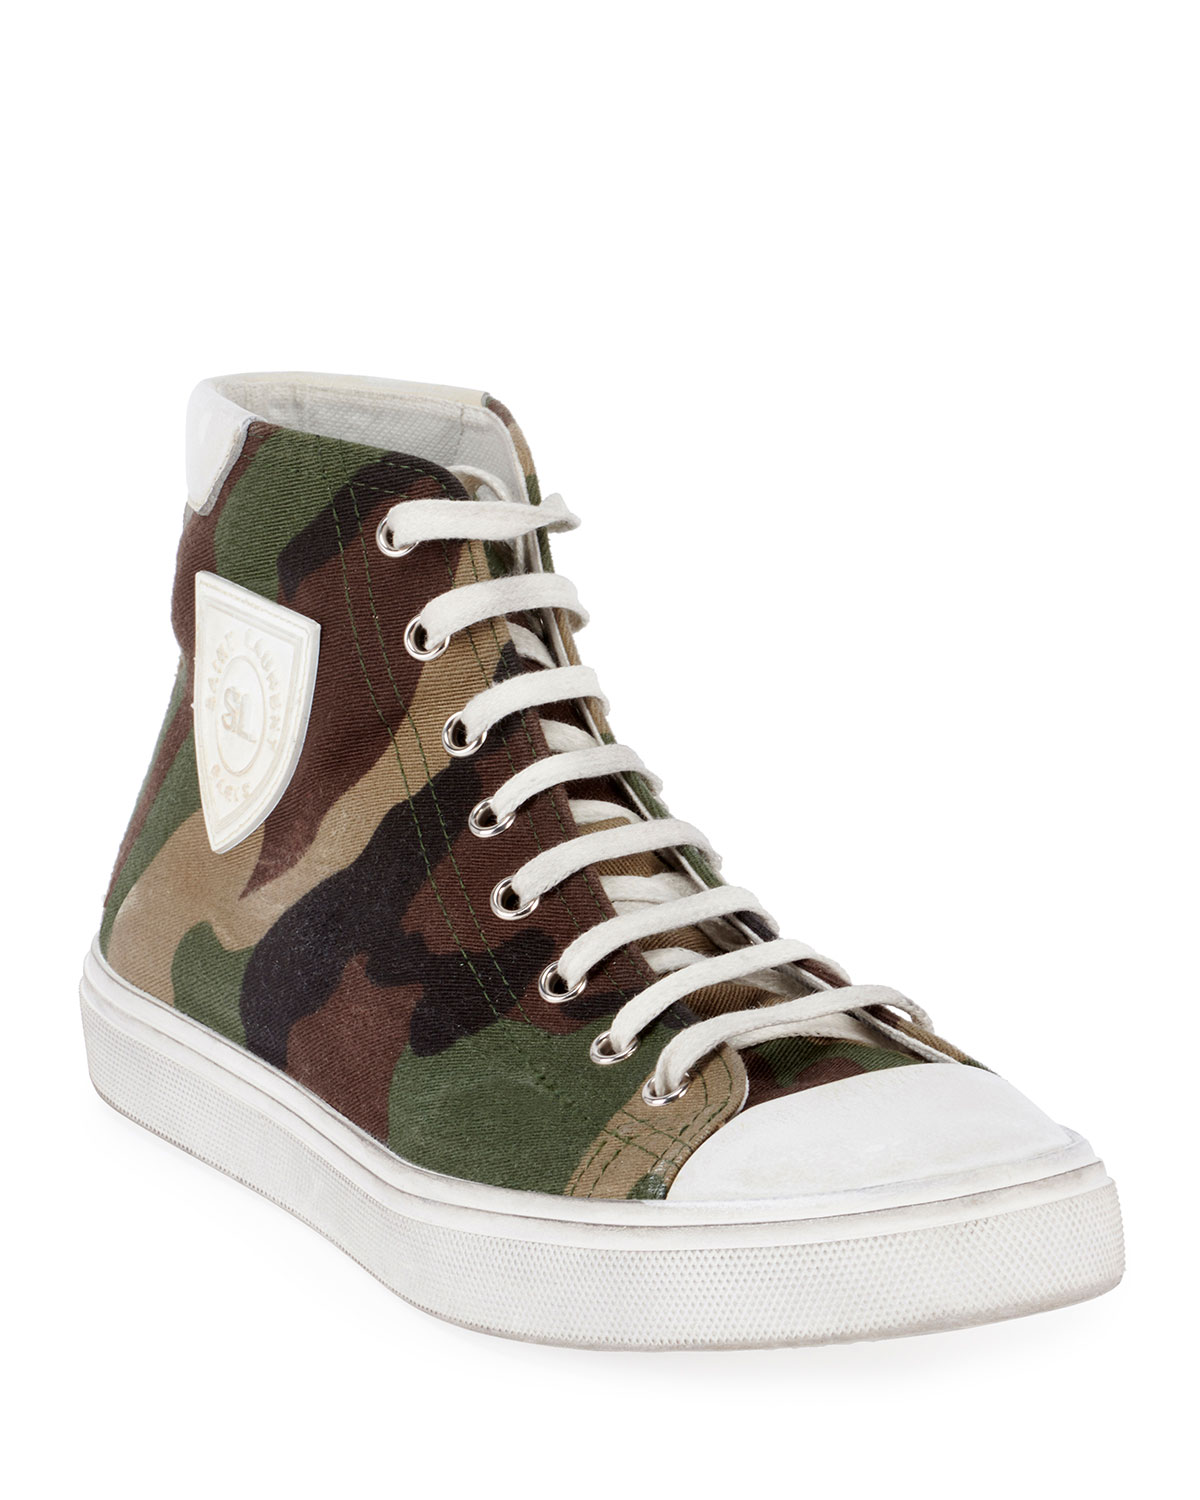 Bedford Patch High-Top Sneakers